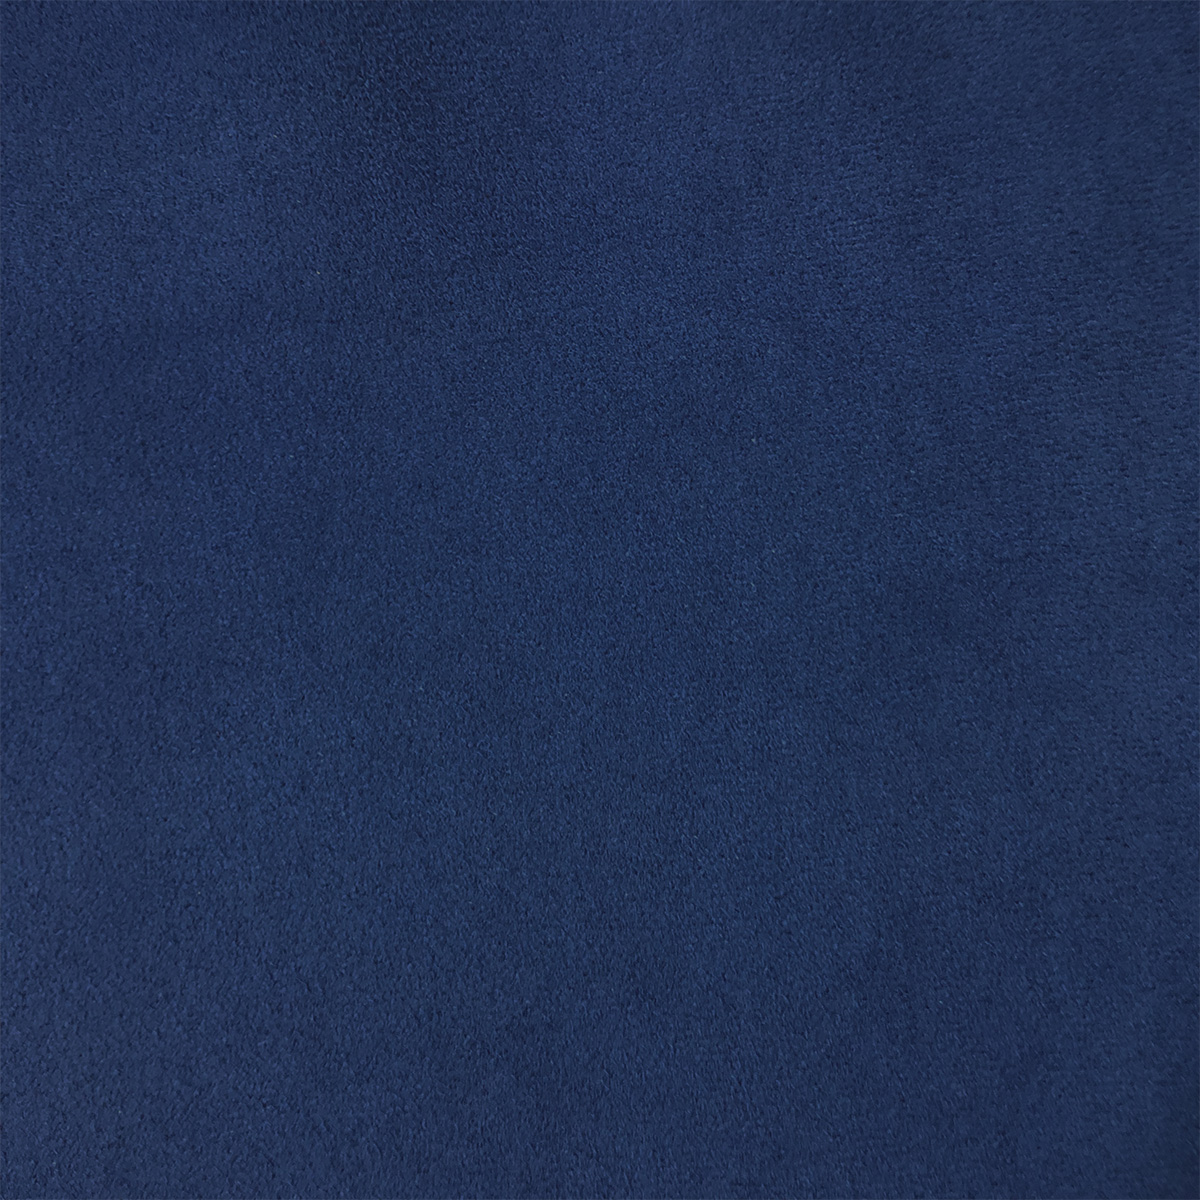 "Uni-Suede 1.625""W x 2.25""H x .09mm - 6 Pieces - Dark Blue"